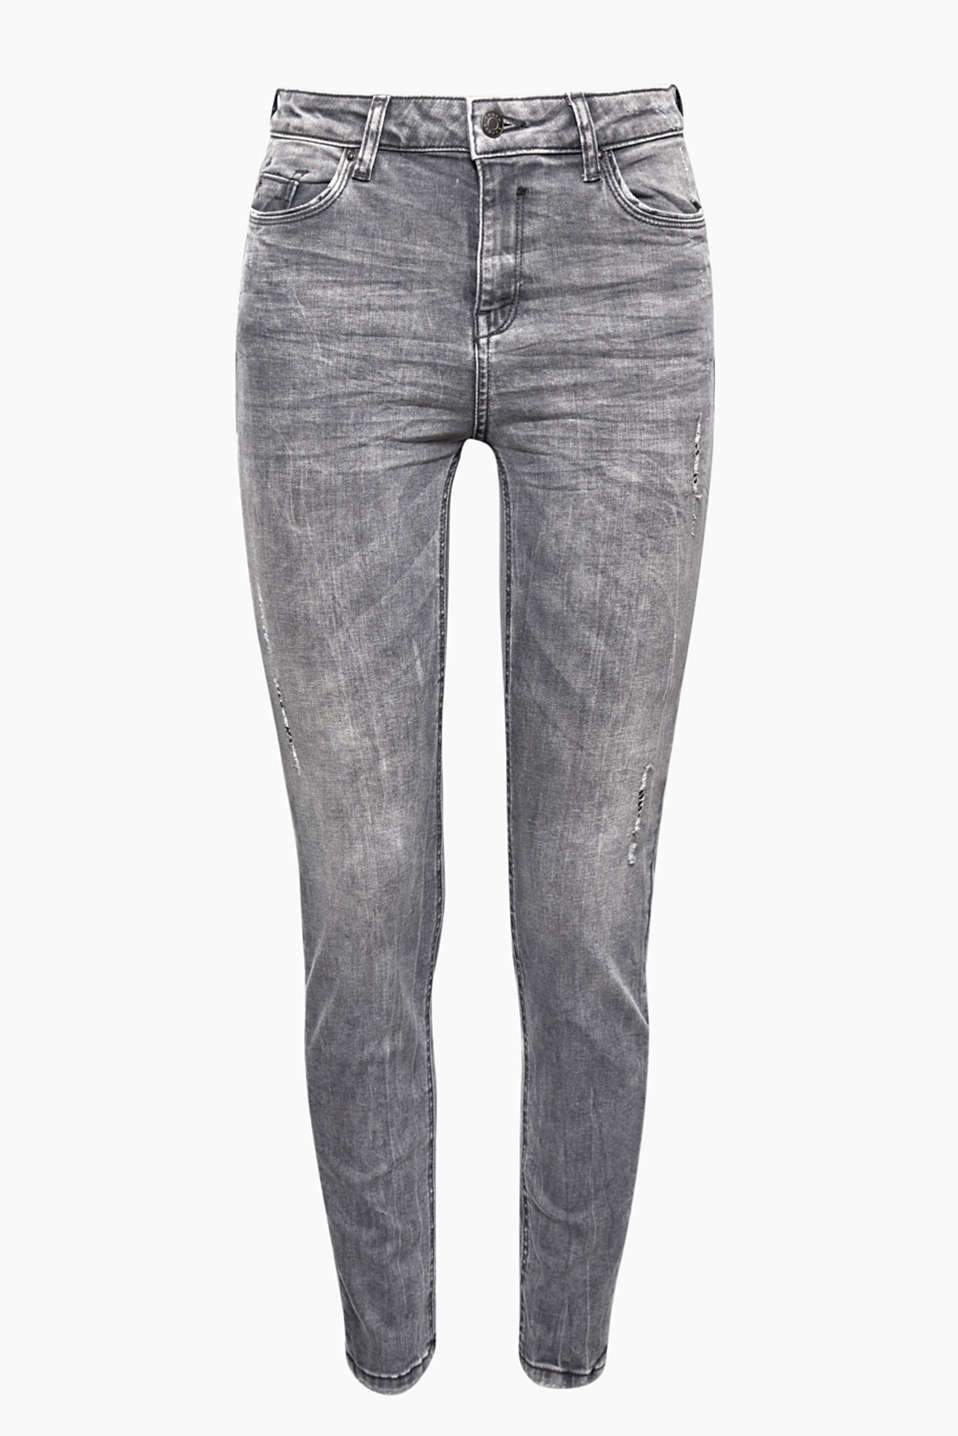 These skinny jeans with added stretch for comfort and vintage effects is a real denim highlight.